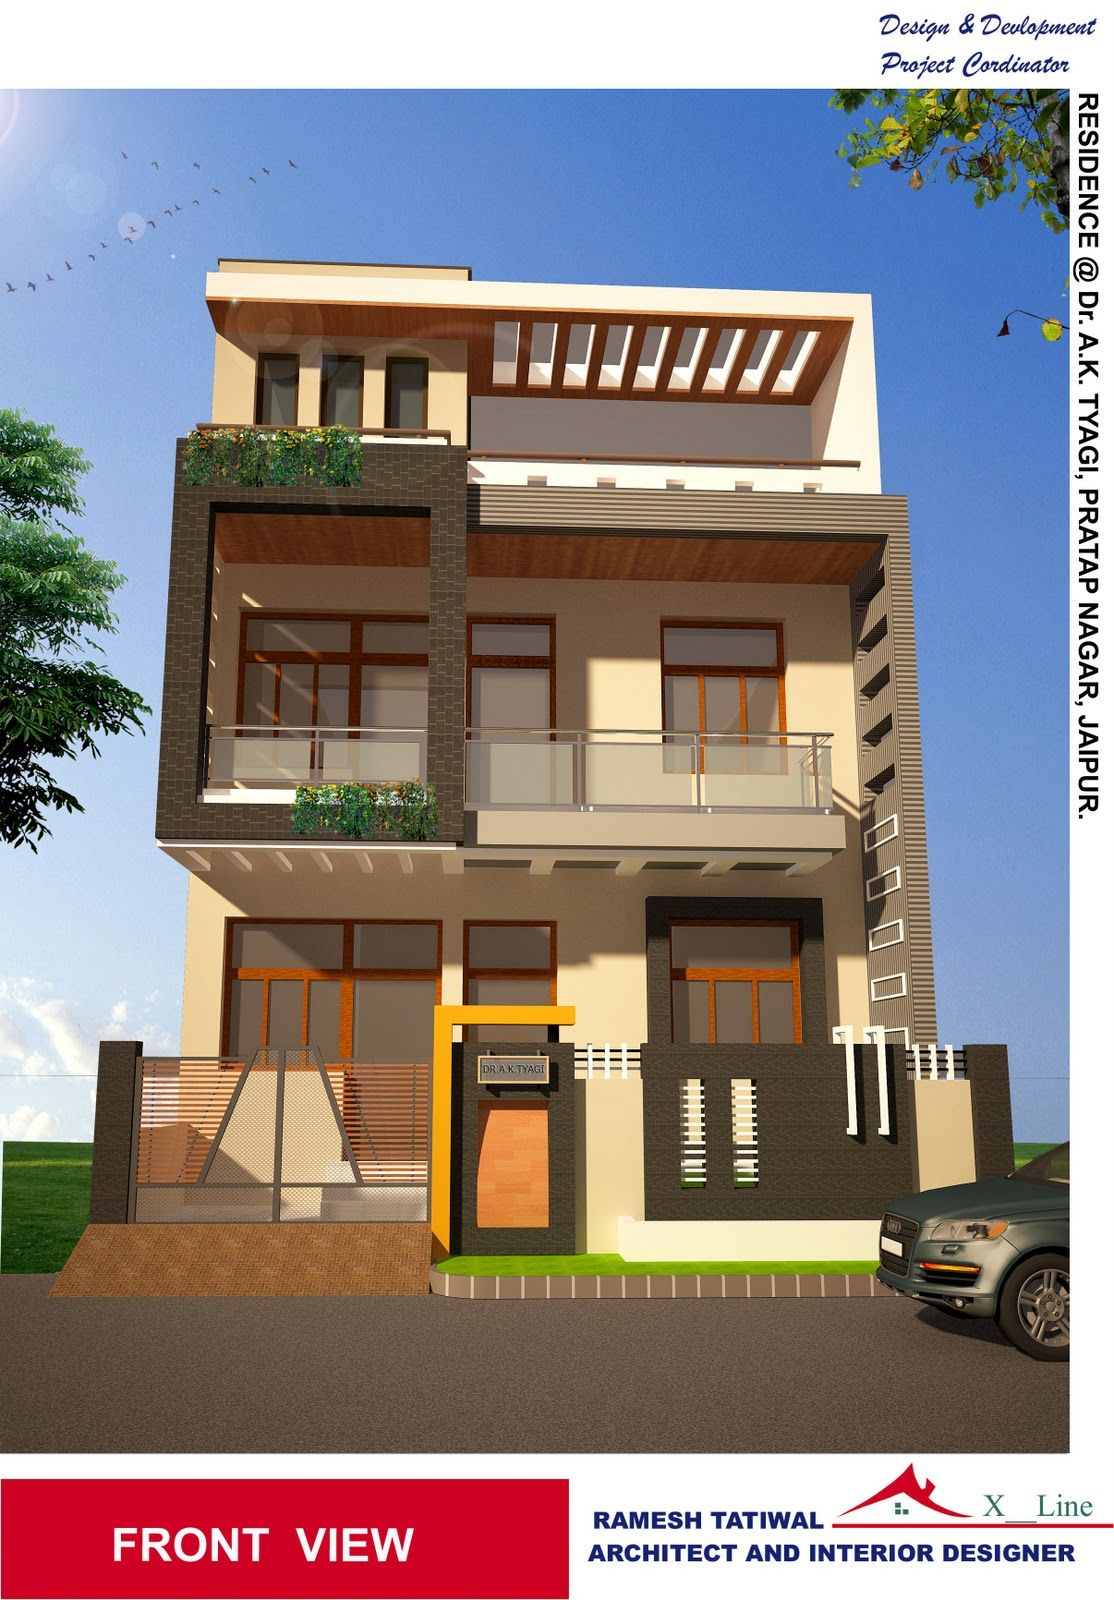 Housedesigns Modern Indian Home Architecture Design From Ramesh Tatiwal Homivo Homes